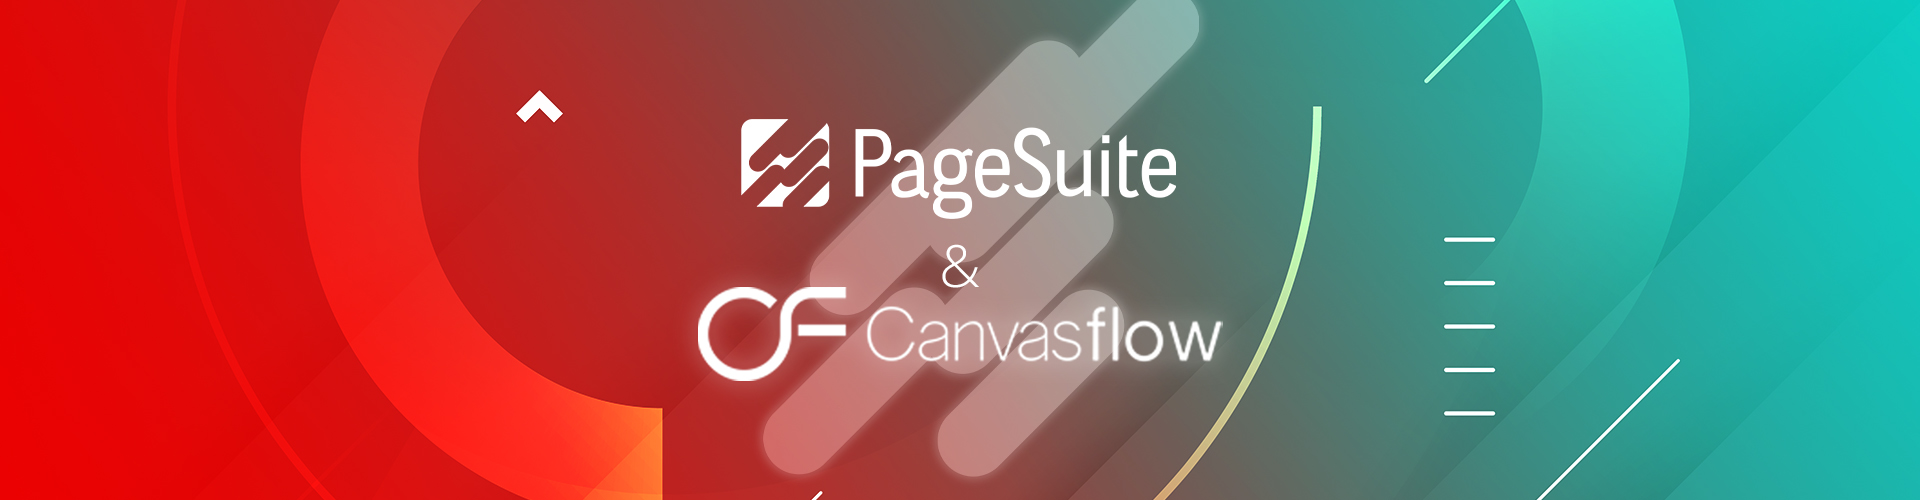 Image of New Tech Partnership: Canvasflow & PageSuite